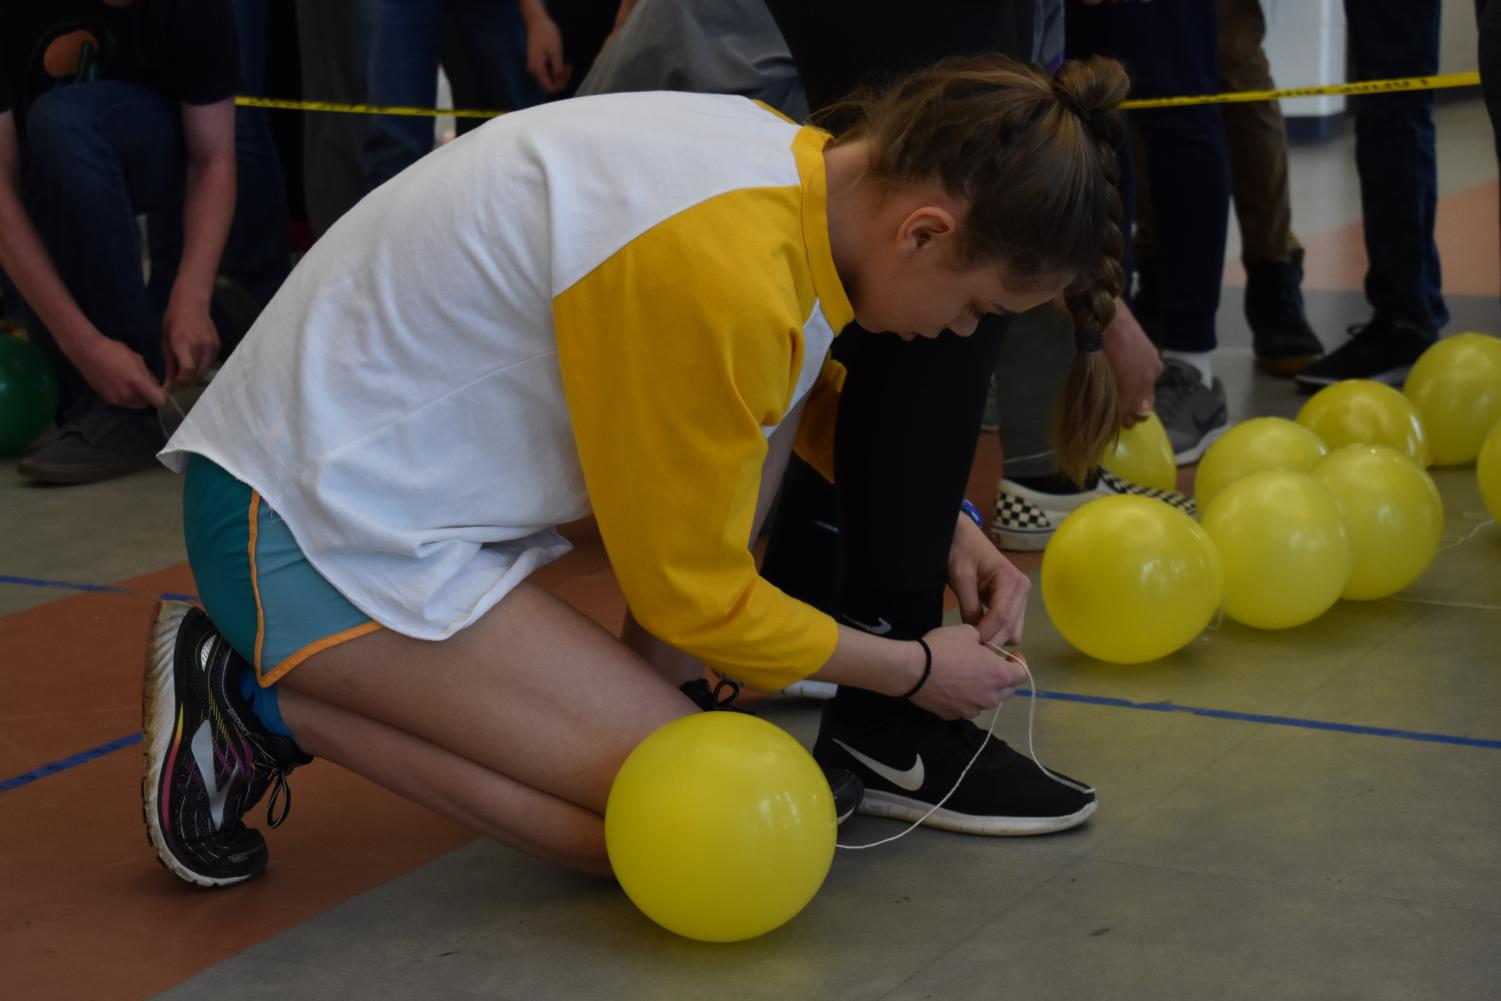 The day's lunchtime competition was Balloon Pop. The seniors placed first in the event, winning 20 points for their class.